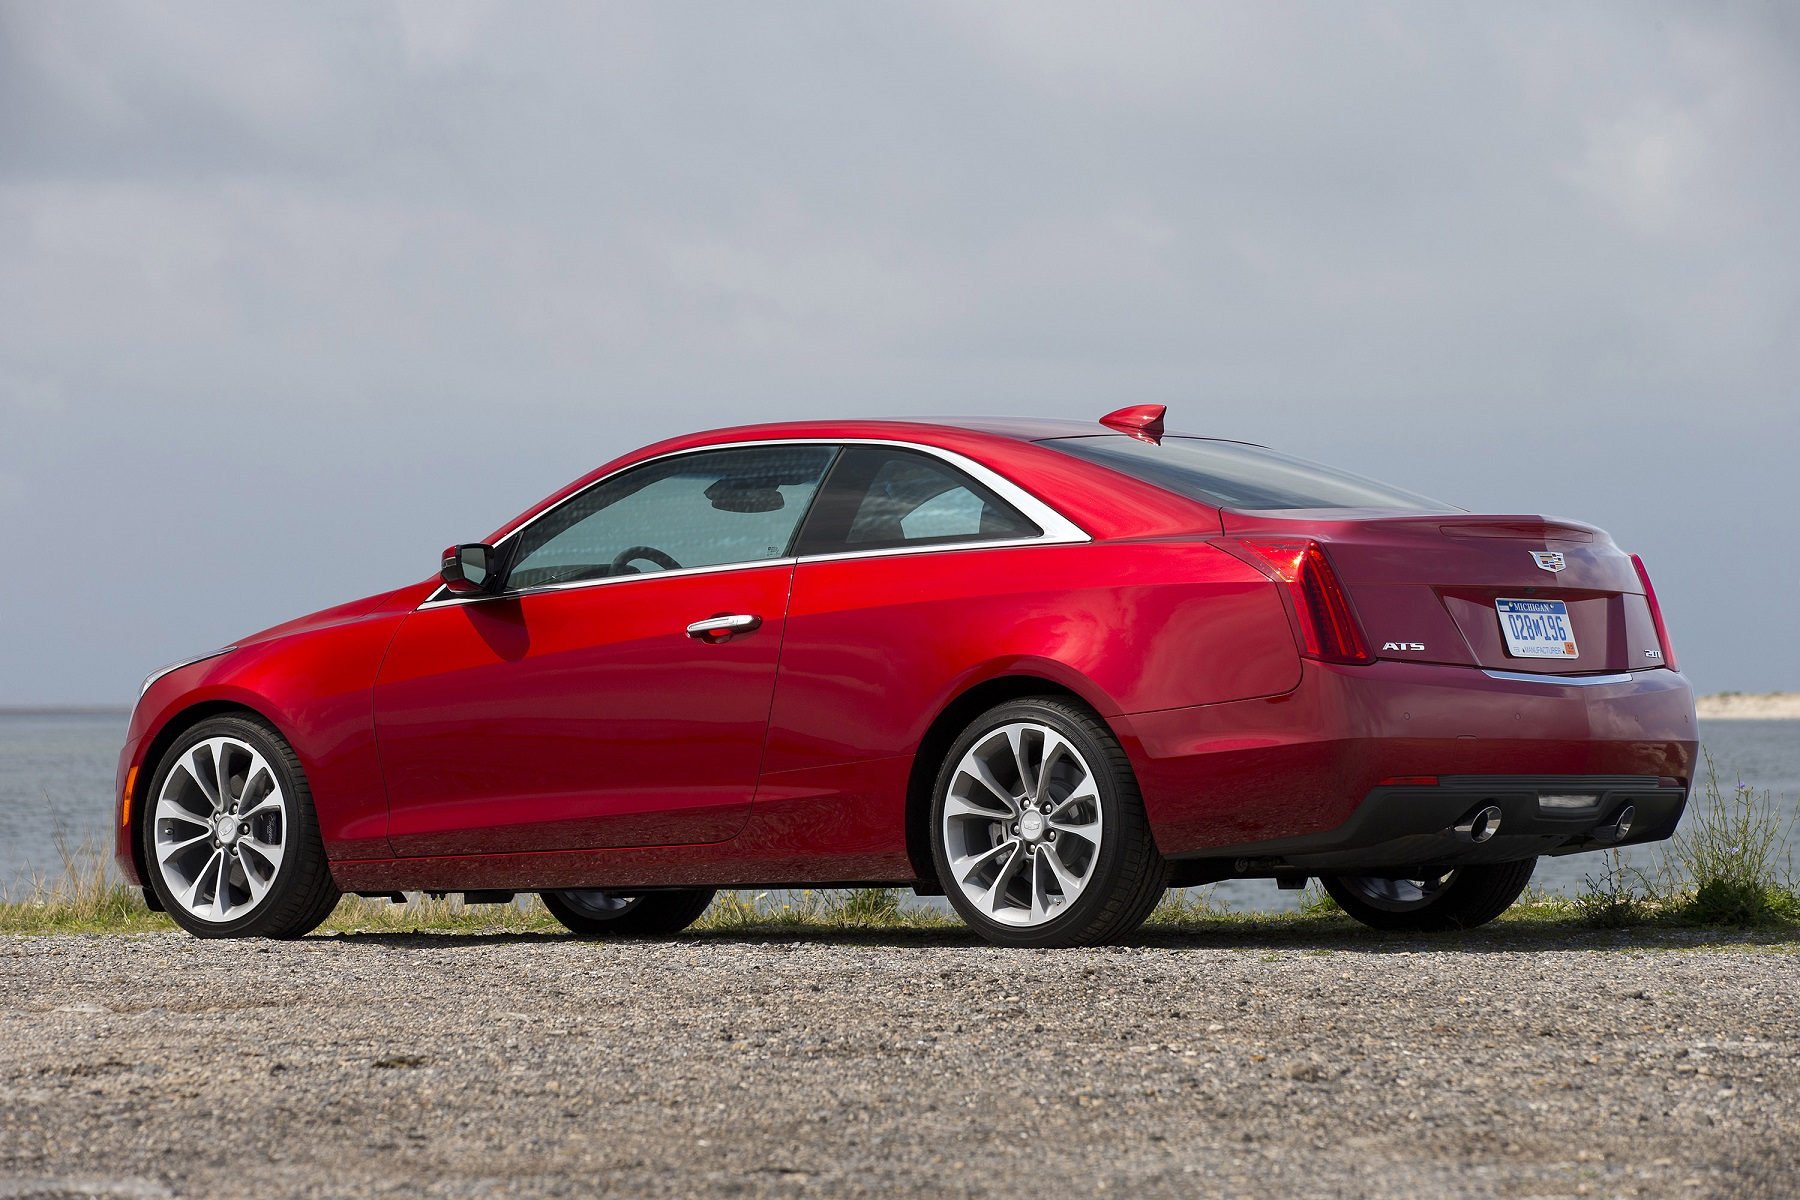 Manufacturer photo: Cadillac's all-new 2015 ATS Coupe is a quicker and more personal addition to the award-winning ATS product line